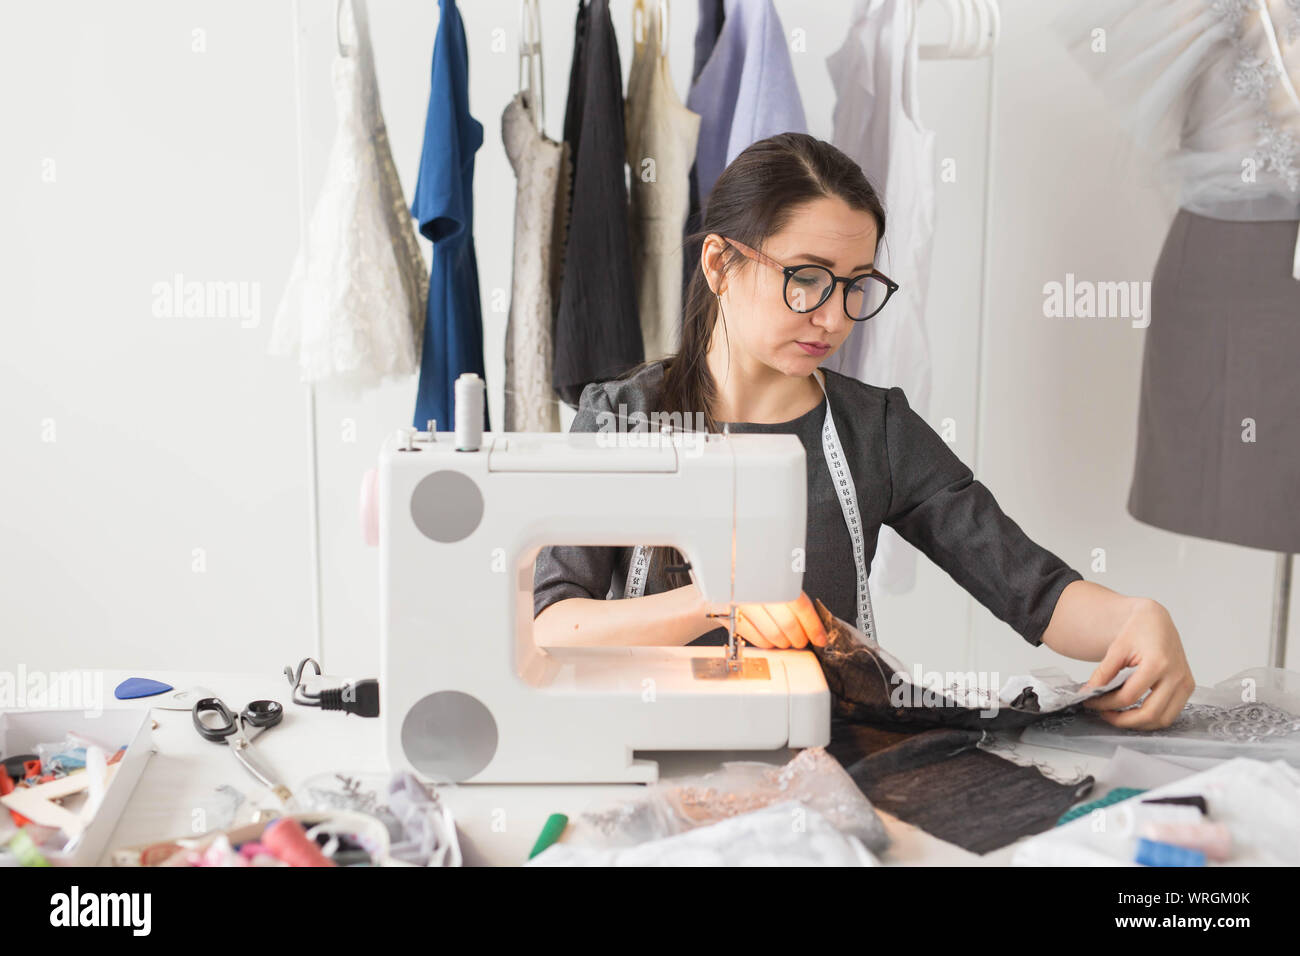 Dressmaker Fashion Tailor And People Concept Young Female Fashion Designer Working In Her Showroom Stock Photo Alamy